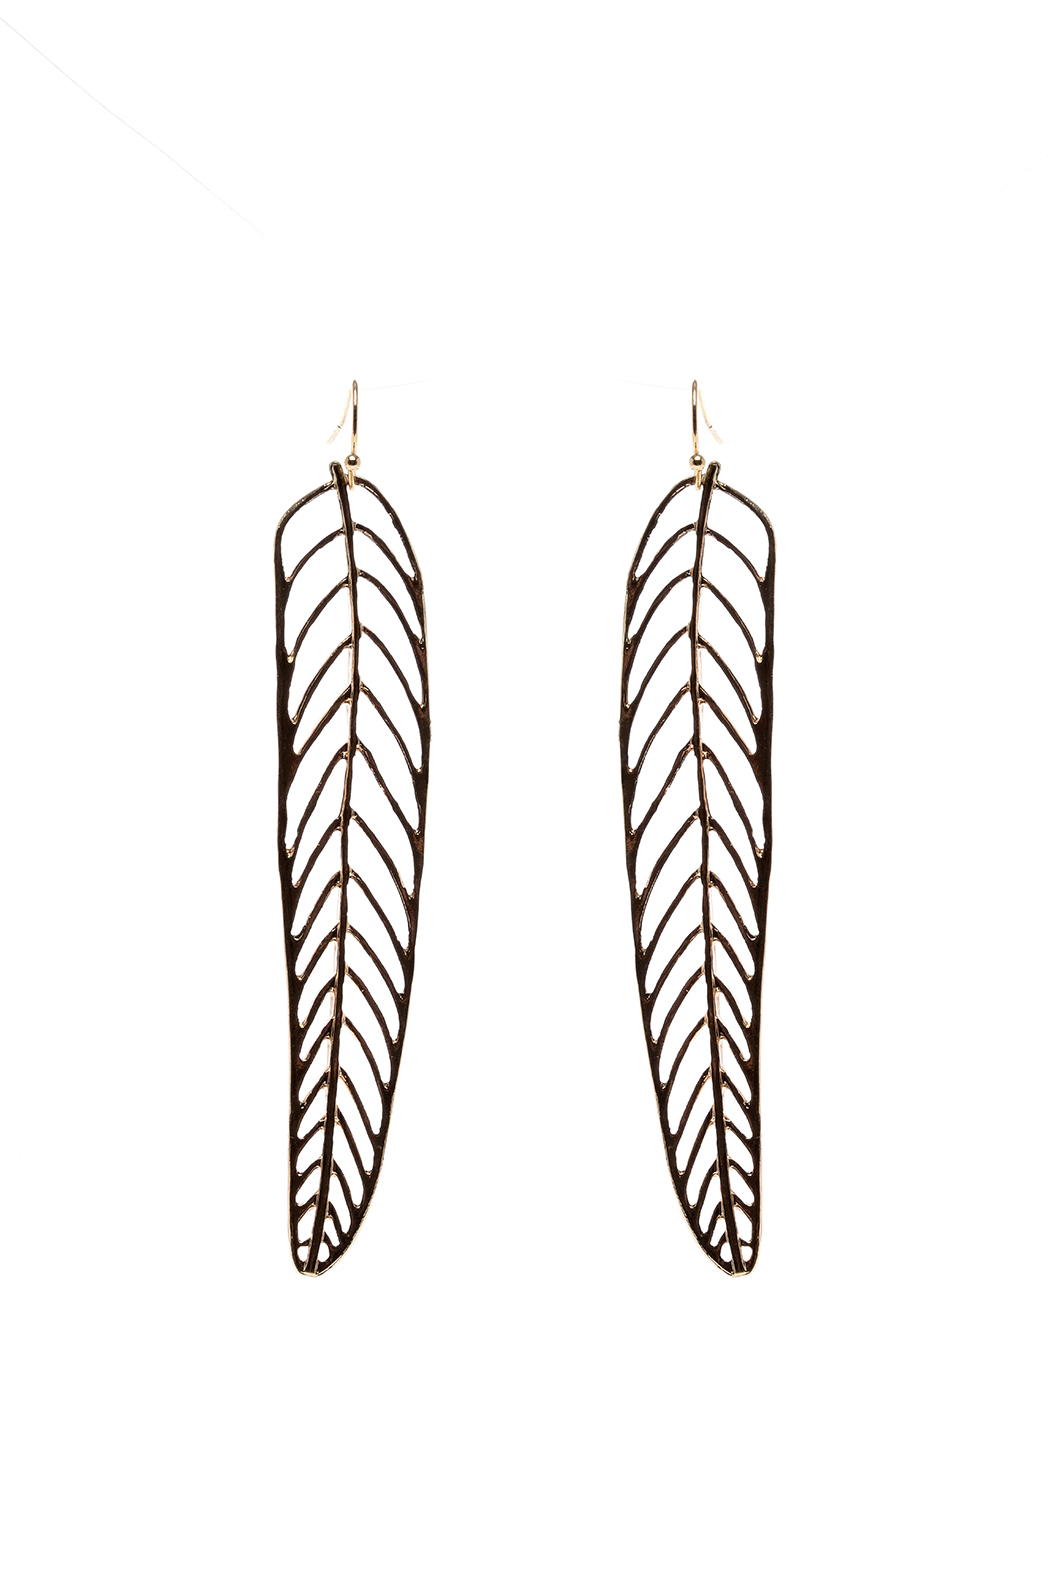 Tara Jewels Gold Feather Earrings From Los Angeles By